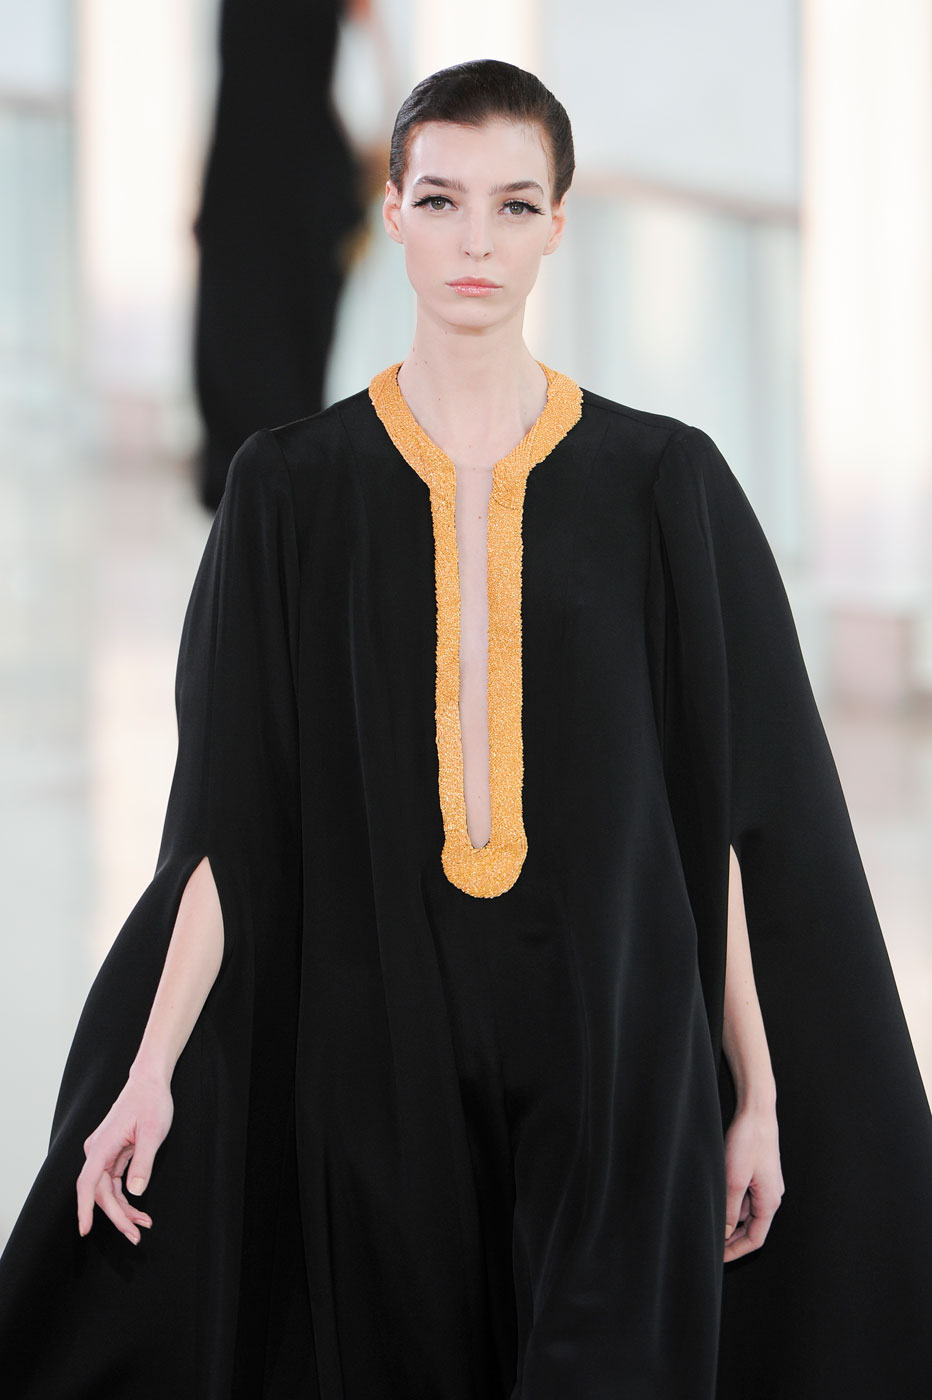 stephane-rolland-fashion-runway-show-haute-couture-paris-spring-2015-the-impression-40